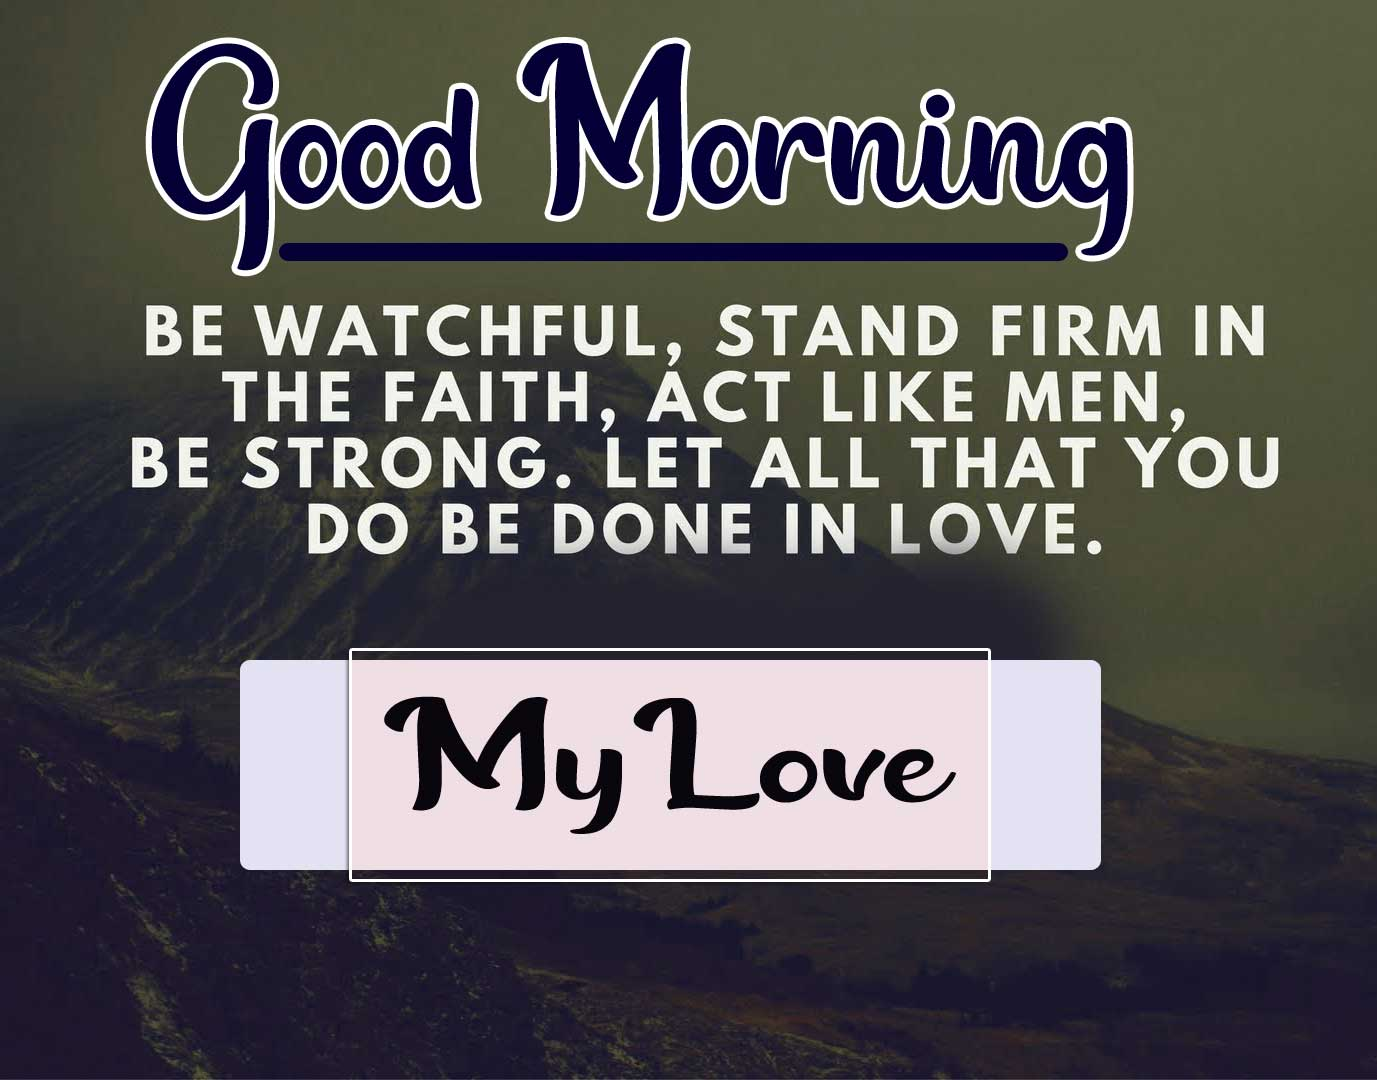 Lover Free Latest Good Morning Images Download